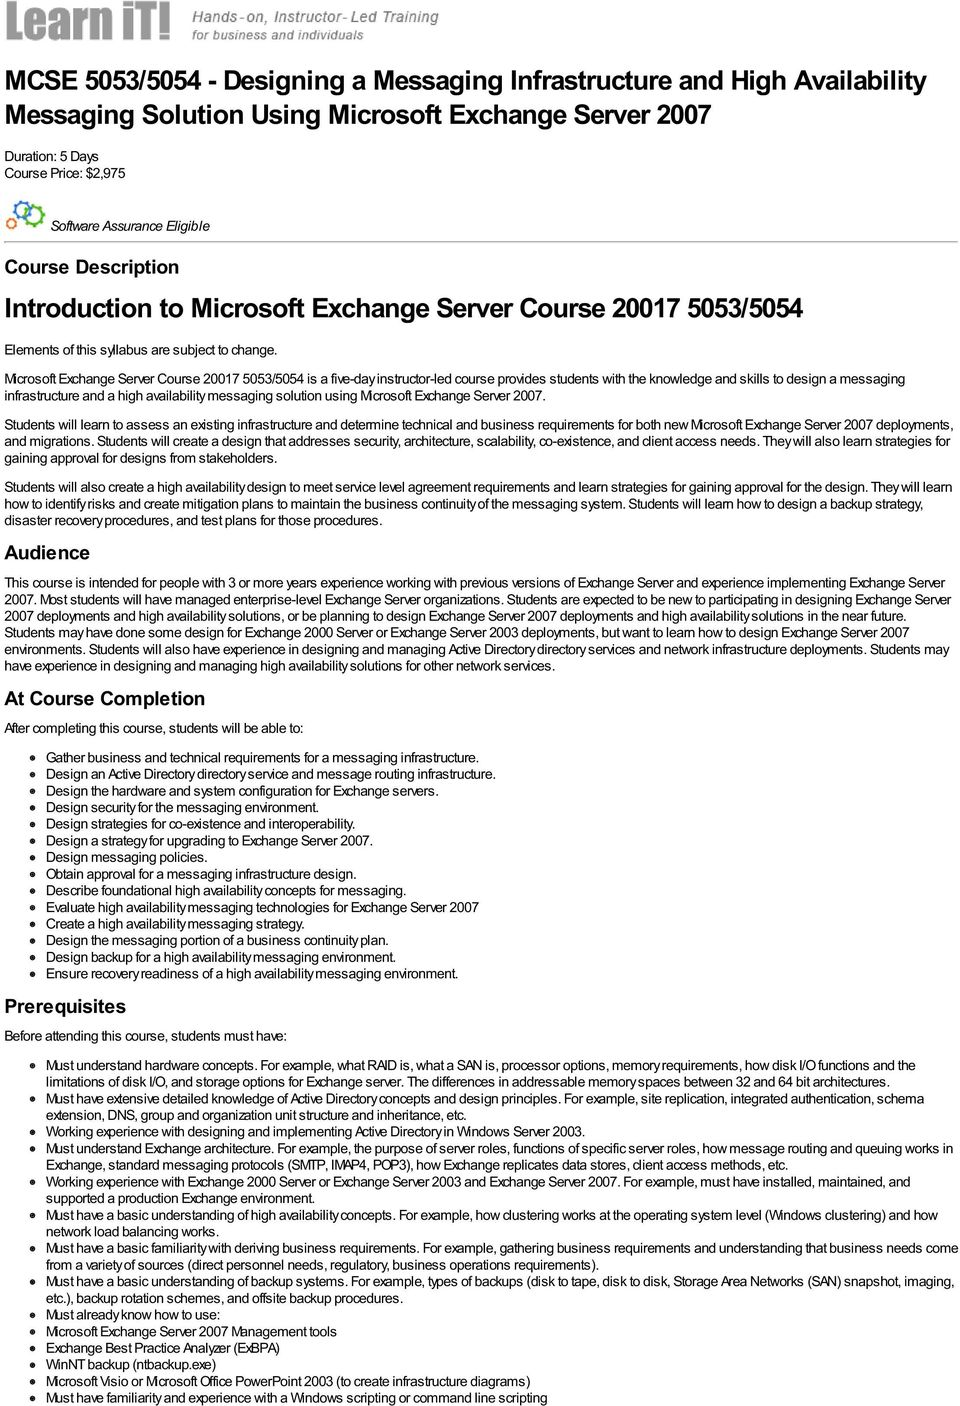 Microsoft Exchange Server Course 20017 5053/5054 is a five-day instructor-led course provides students with the knowledge and skills to design a messaging infrastructure and a high availability